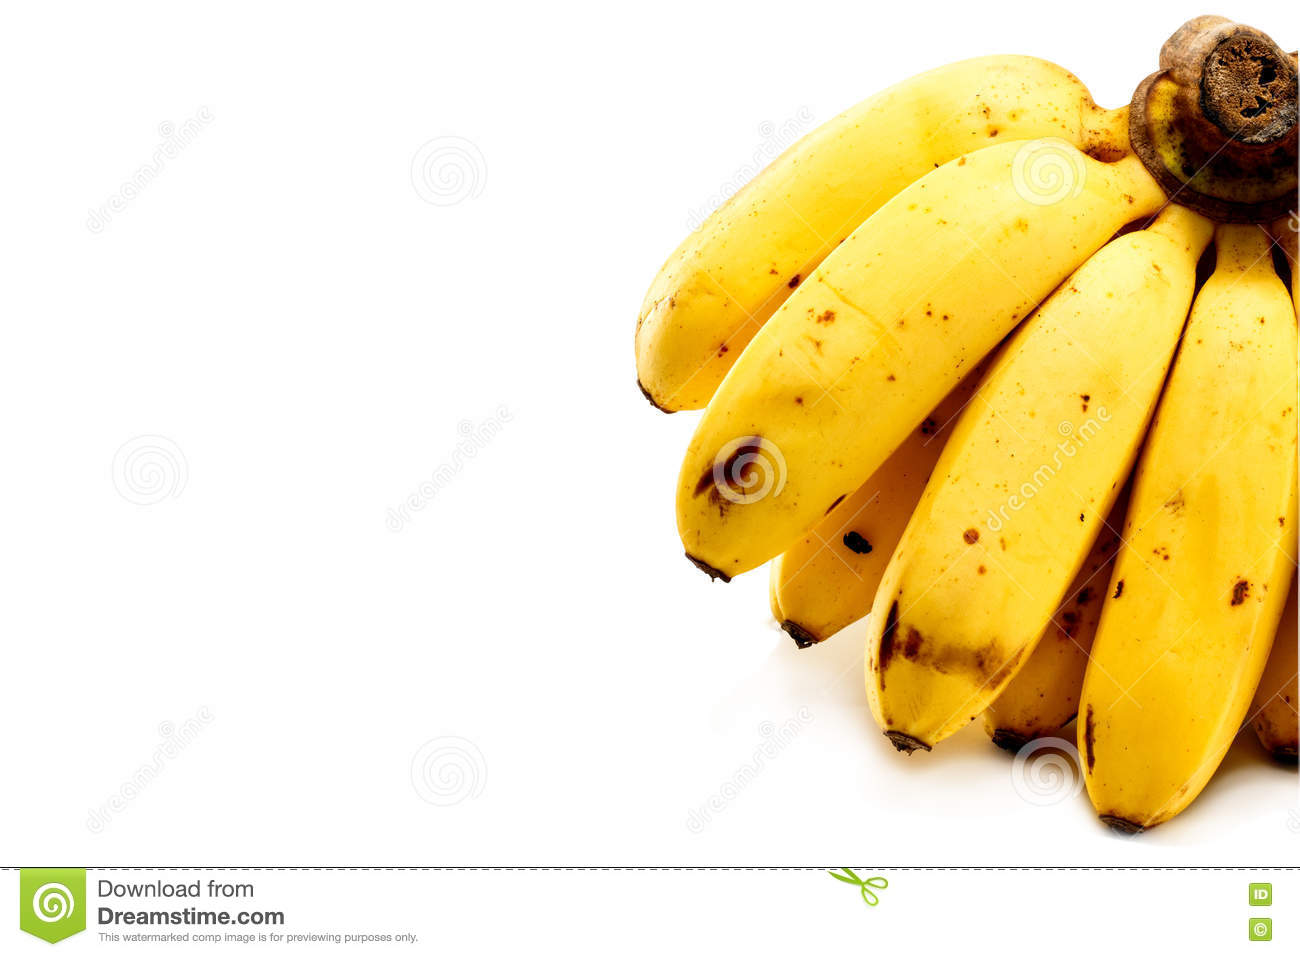 Bunch of bananas isolated on white background with copy space